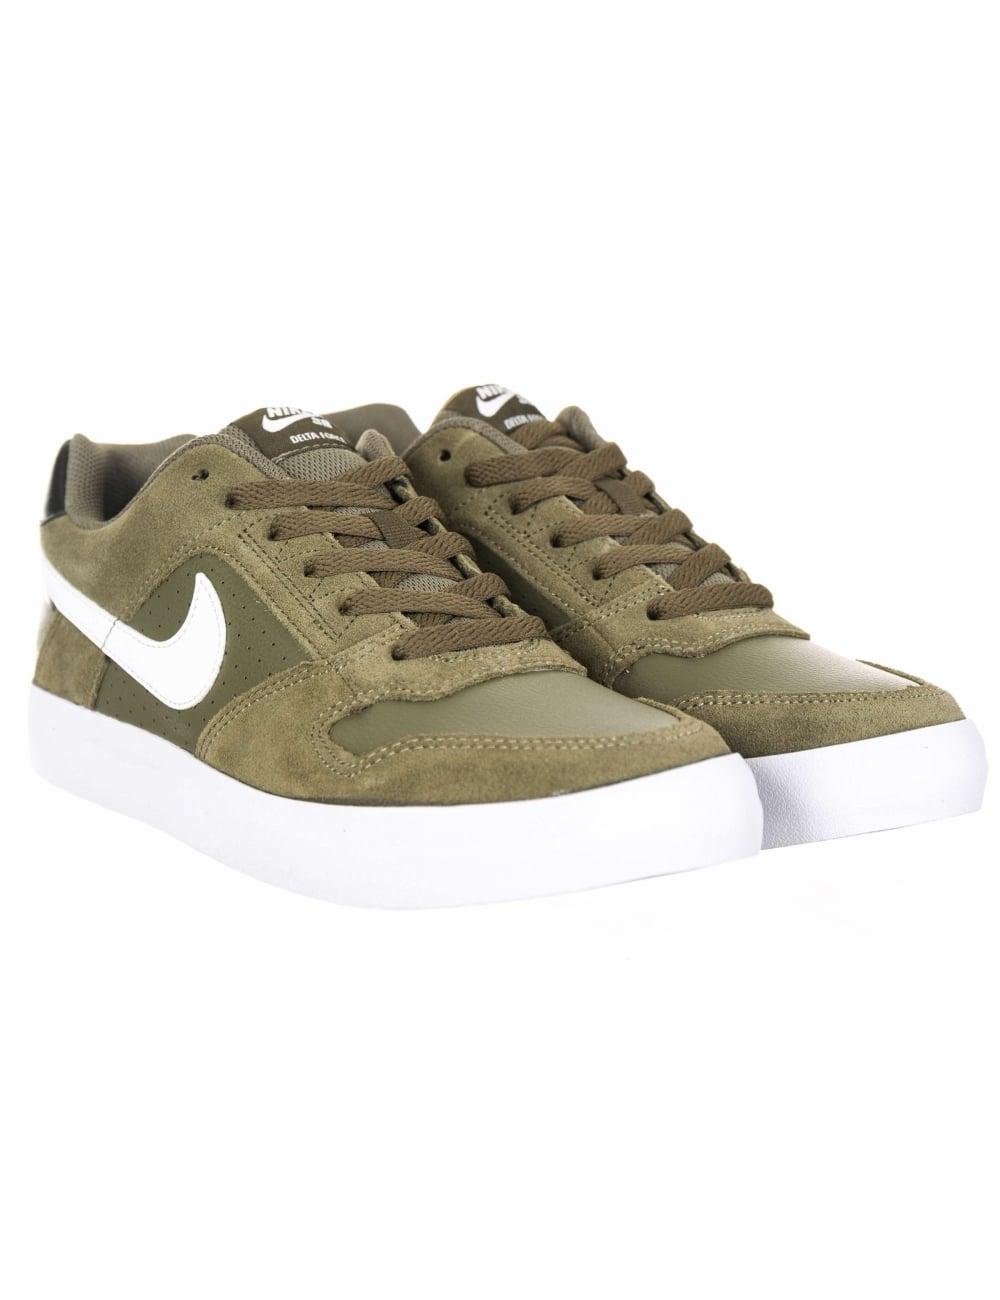 8c8372dea3750 Nike SB Delta Force Vulc Trainers - Olive/White - Footwear from Fat ...